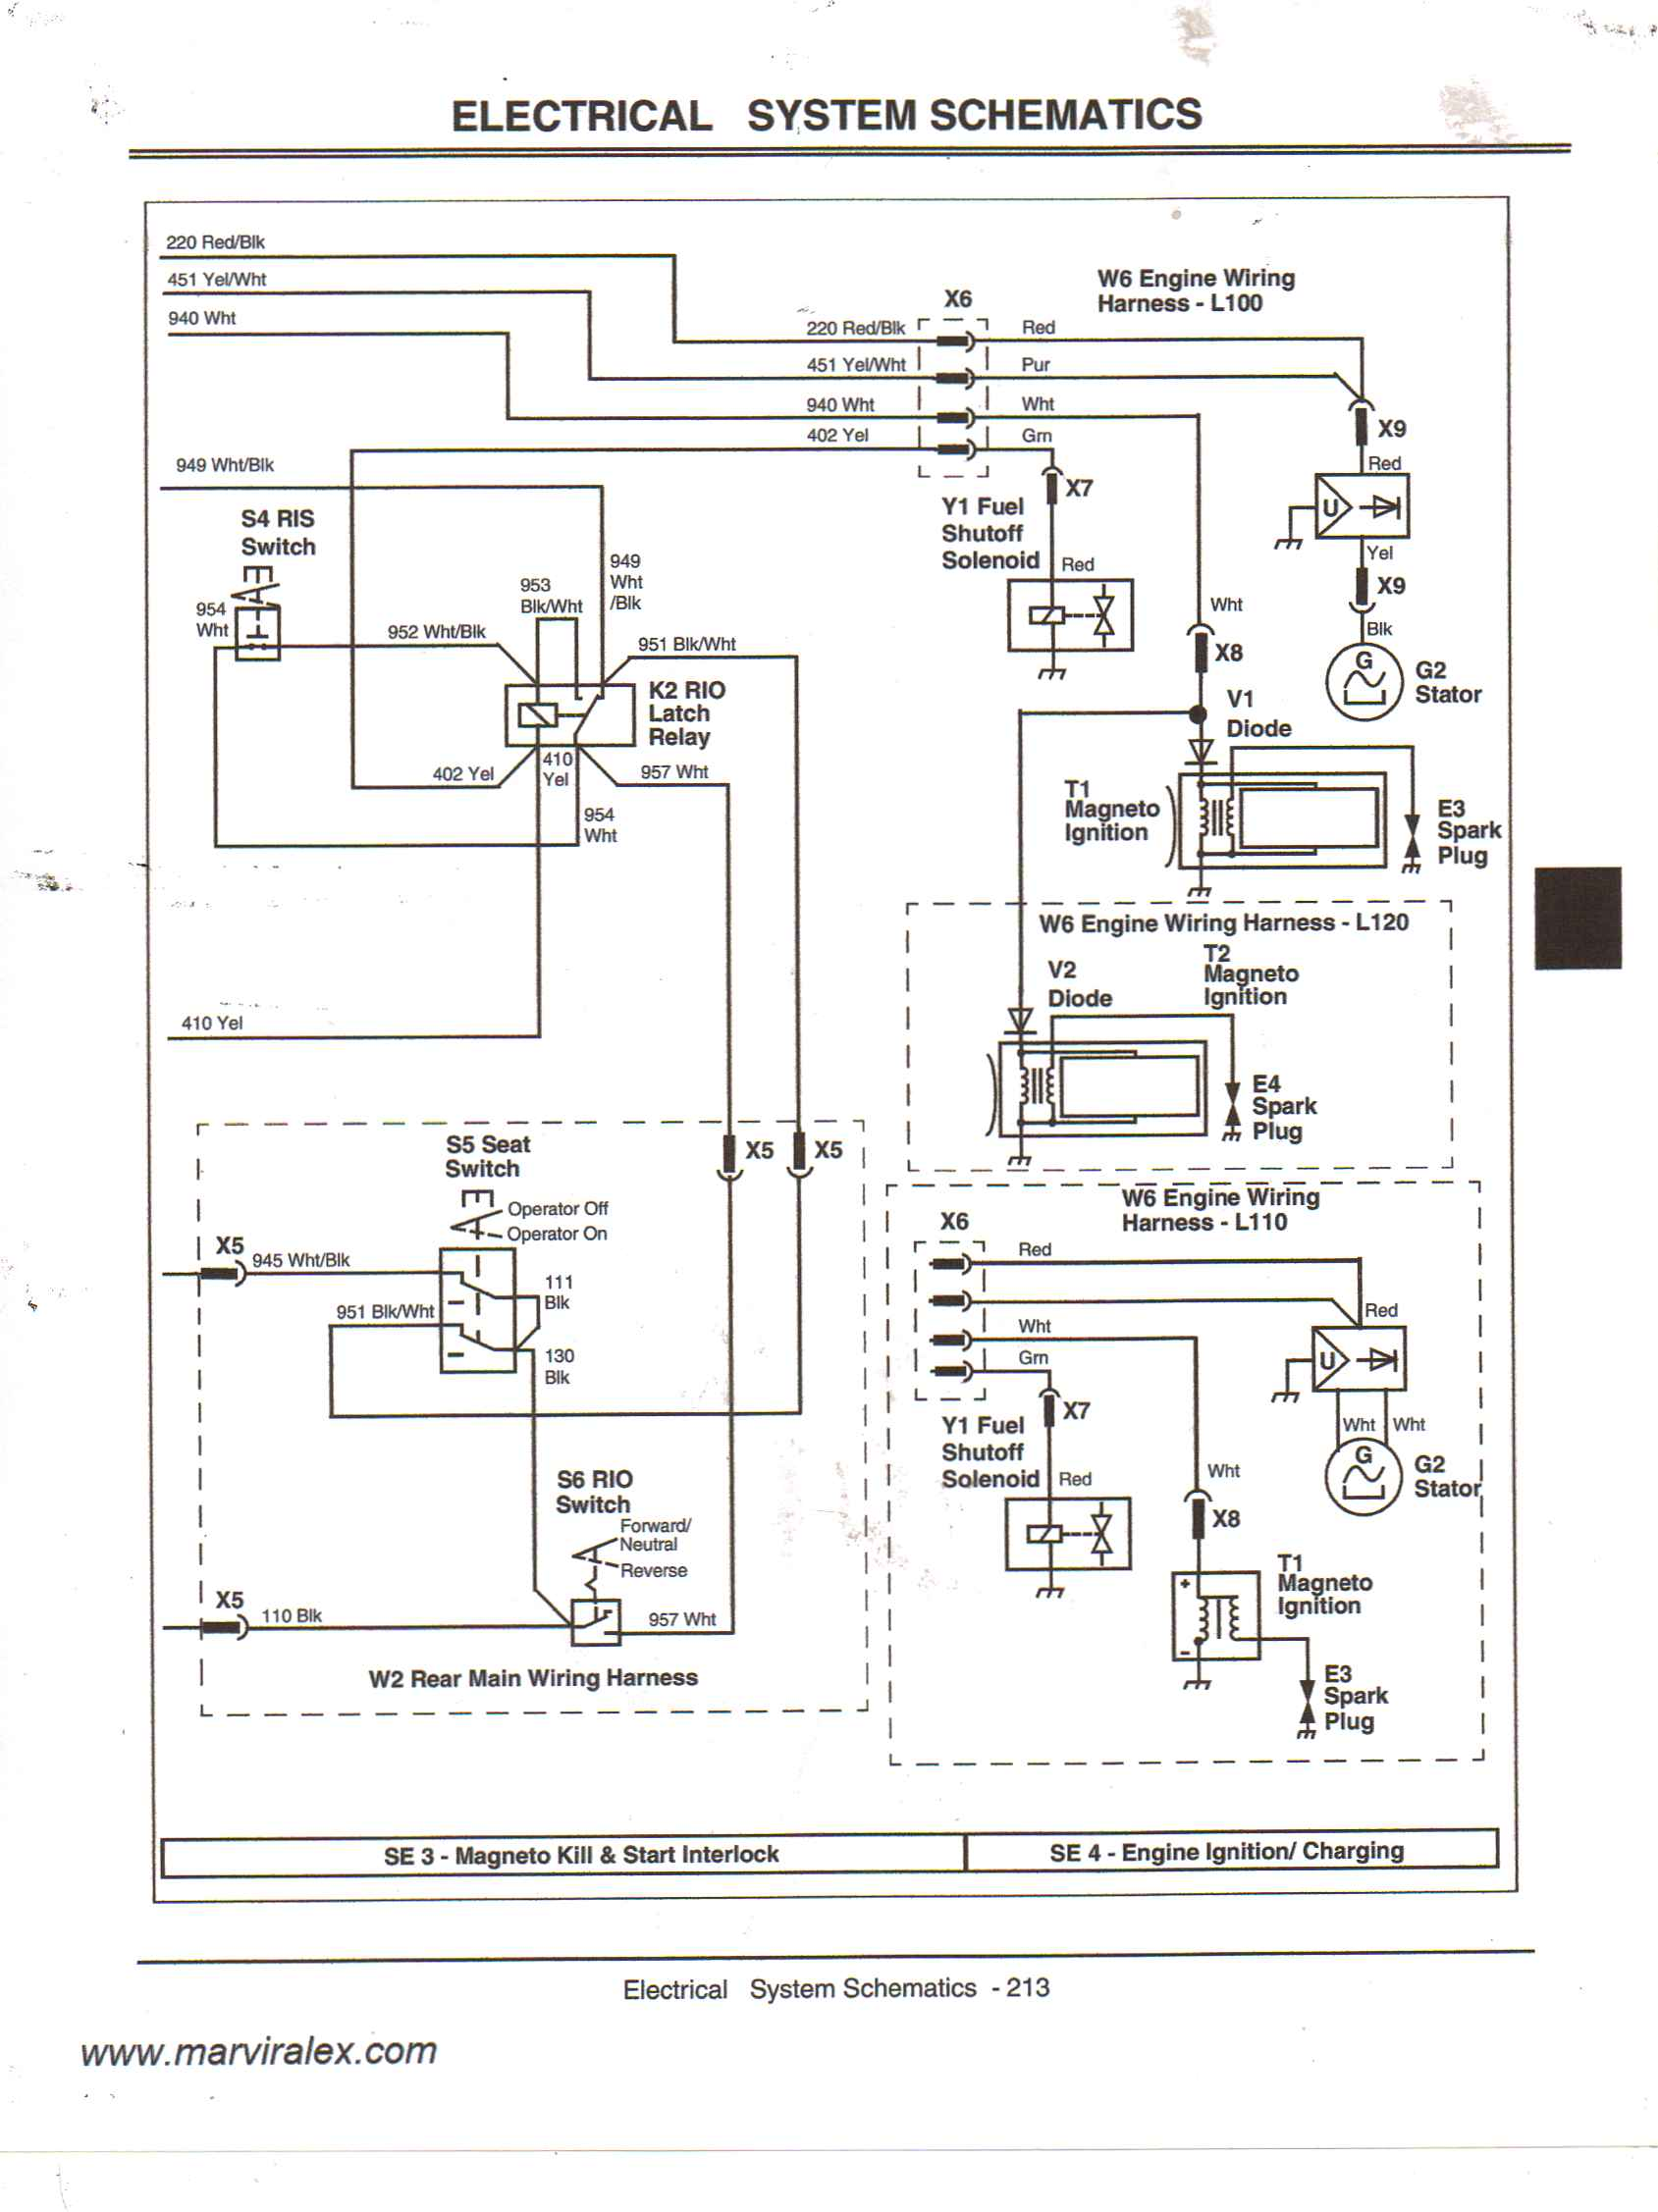 Wiring Diagram For John Deere L120 Lawn Tractor Everything Wiring